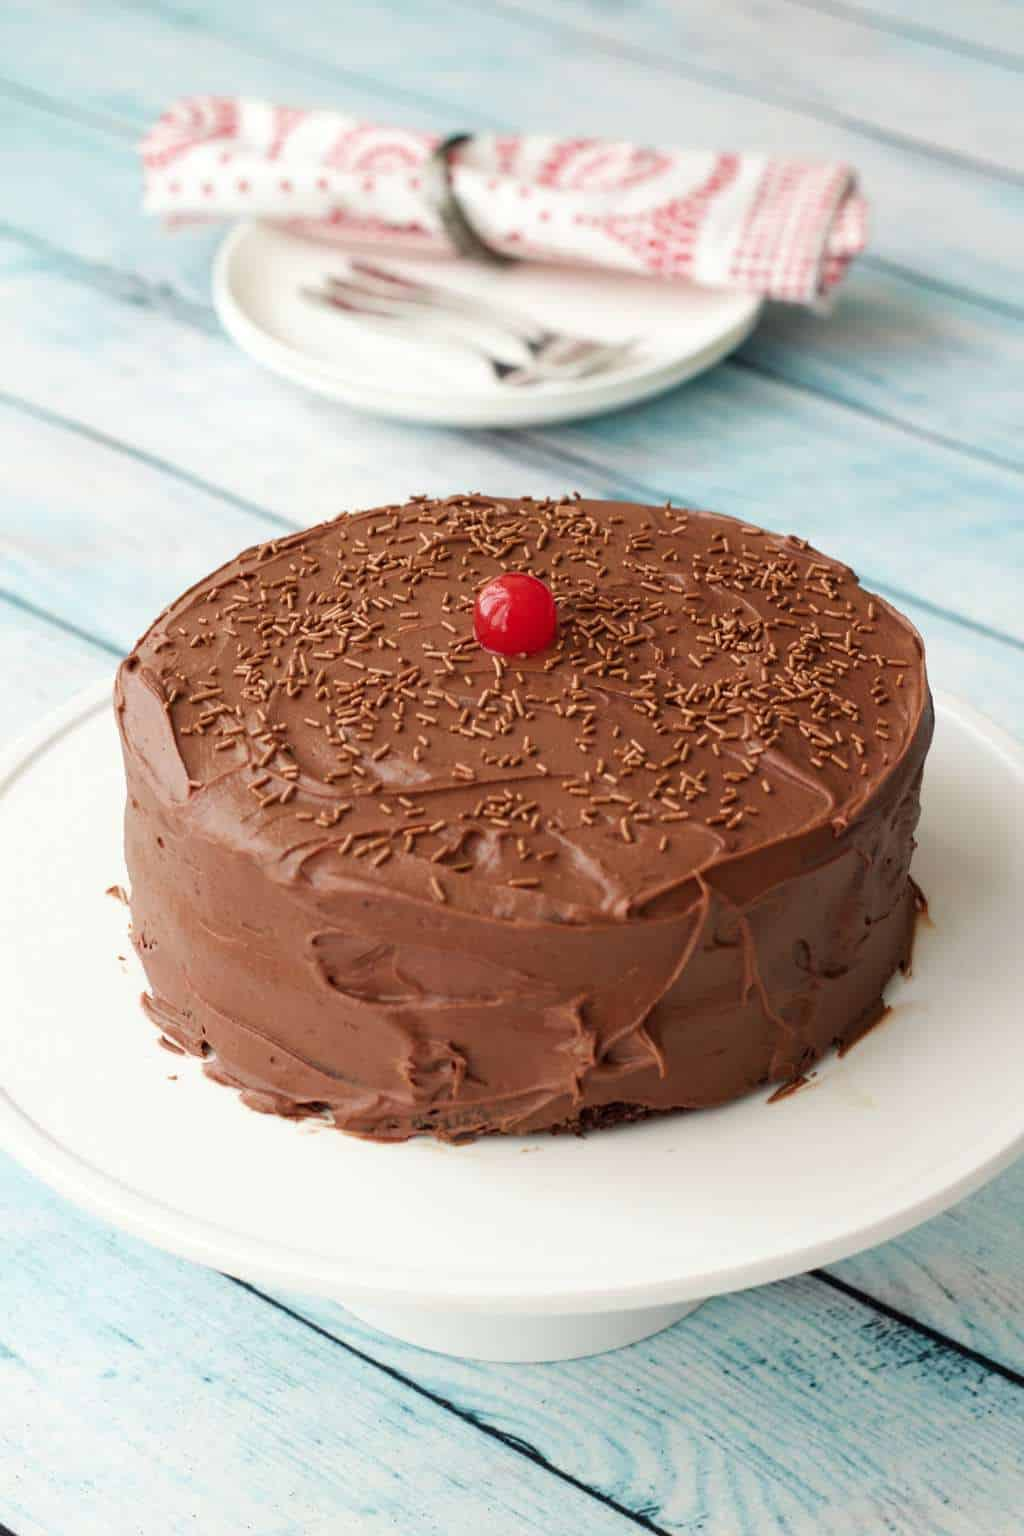 Chocolate cake with chocolate frosting on a white cake stand.